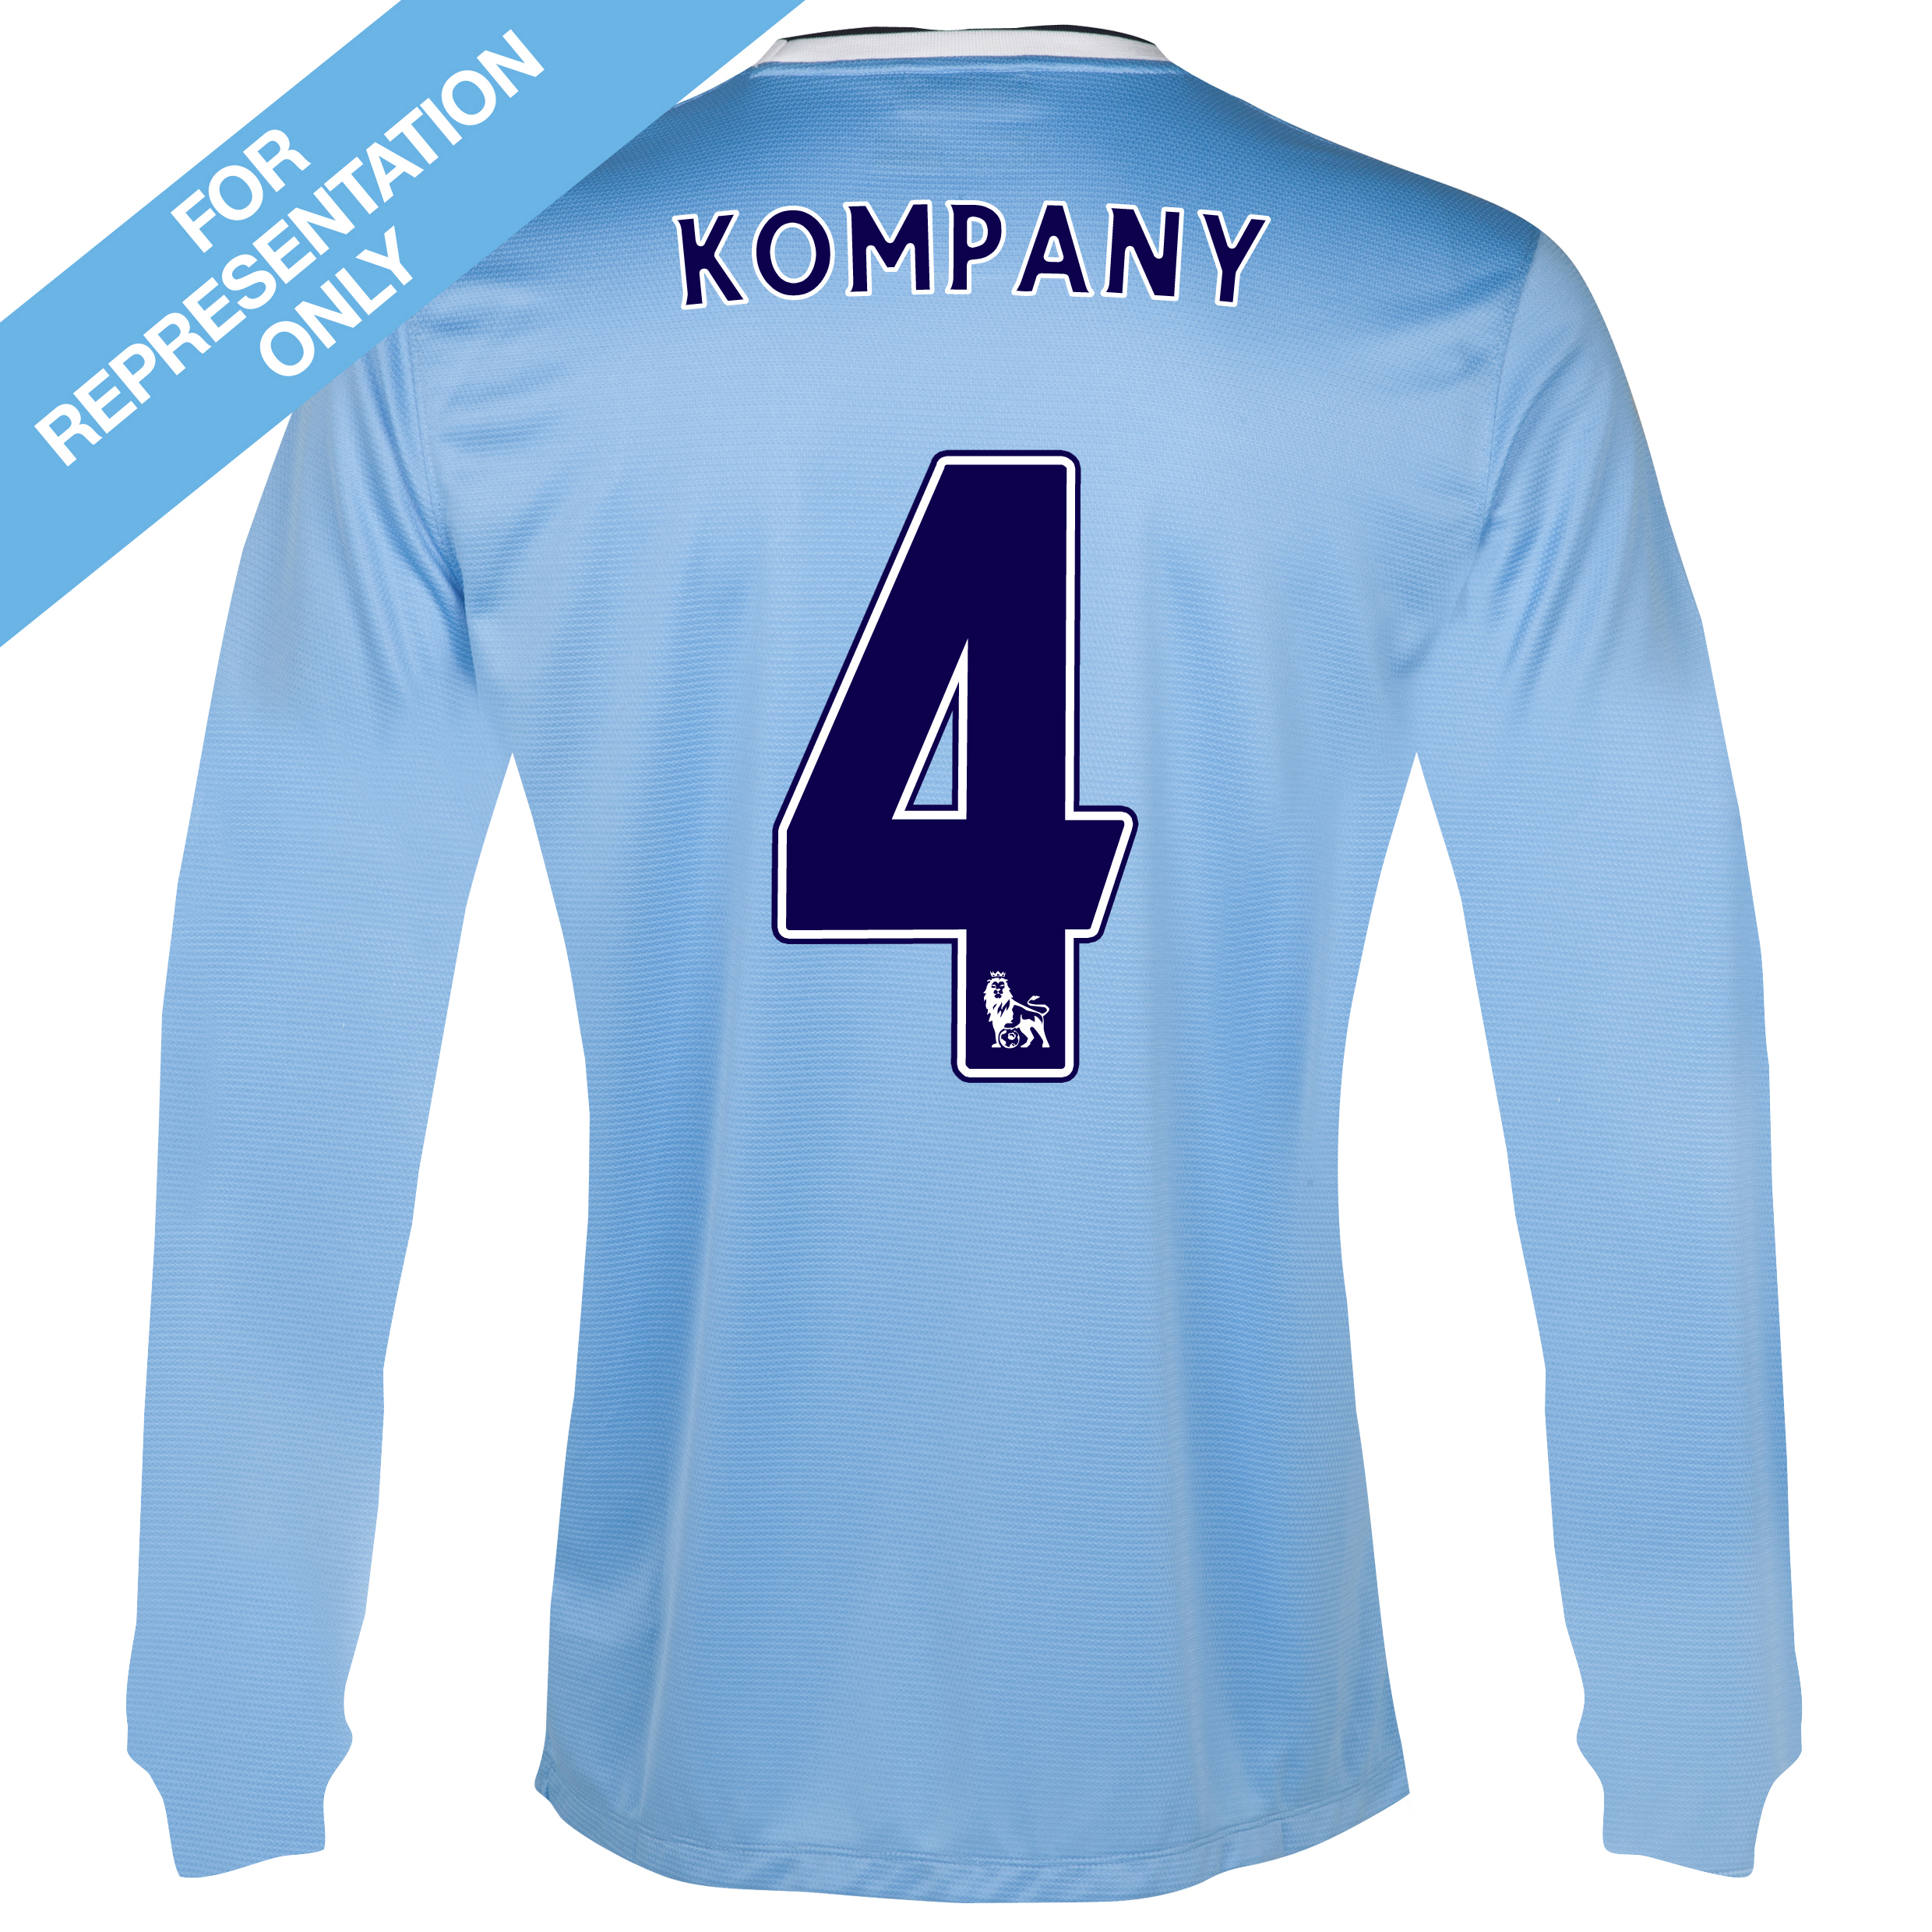 Manchester City Home Shirt 2013/14 - Long Sleeved with Kompany 4 printing